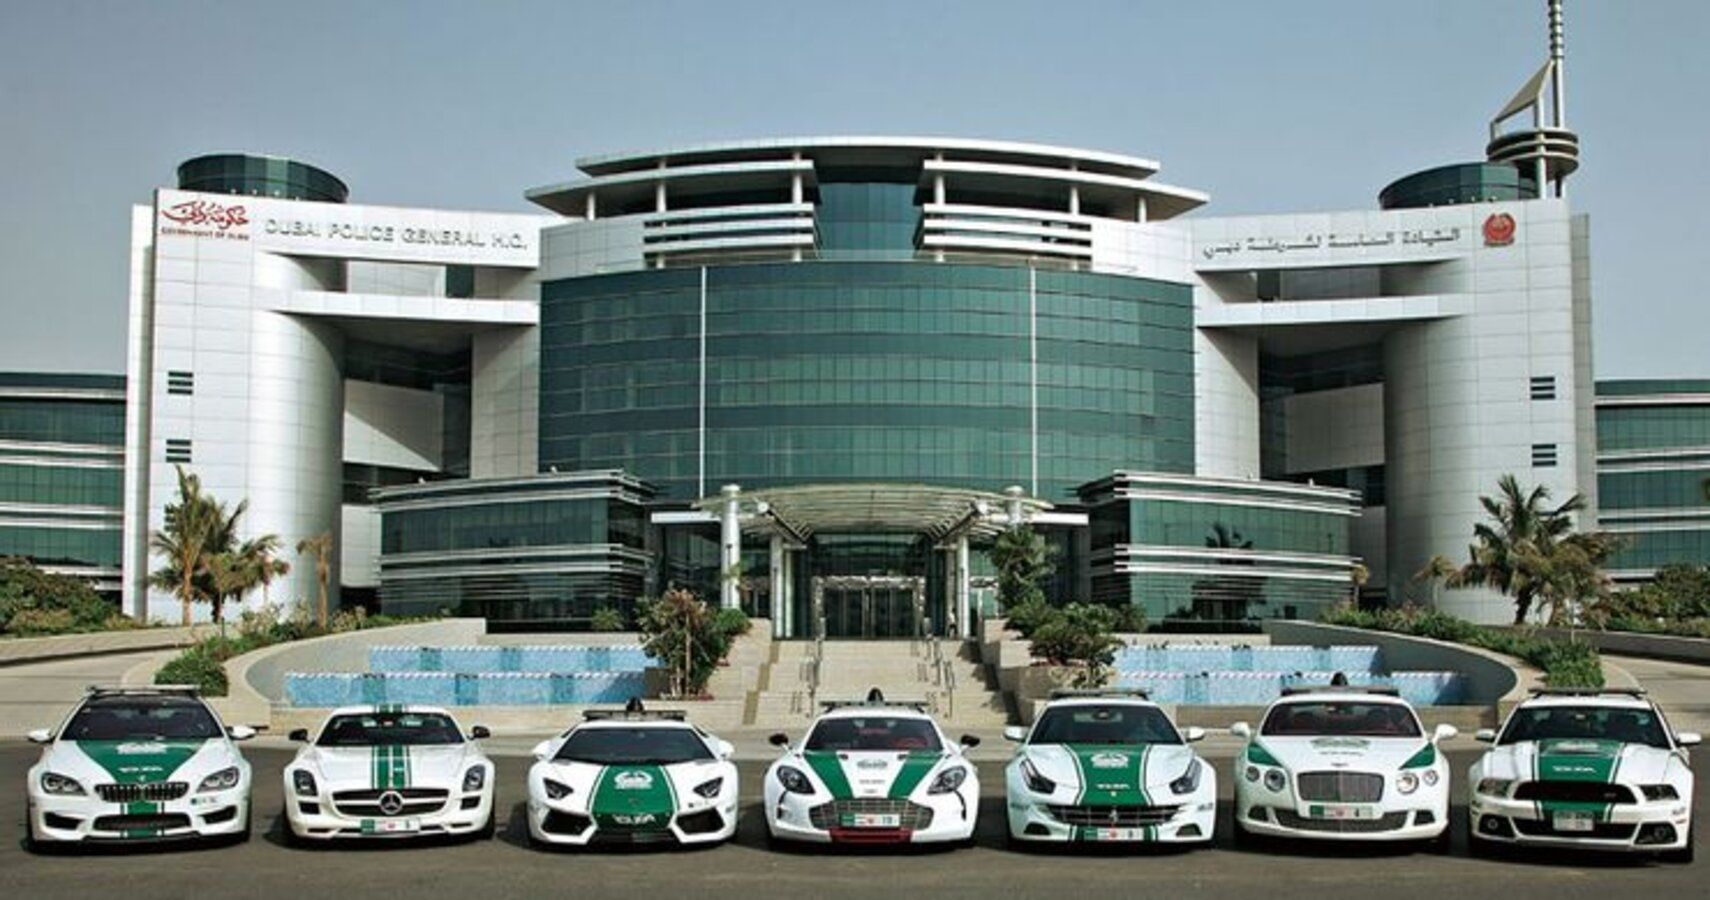 A Look At Some Dubai Police Cars And Why They Are Ridiculously Expensive